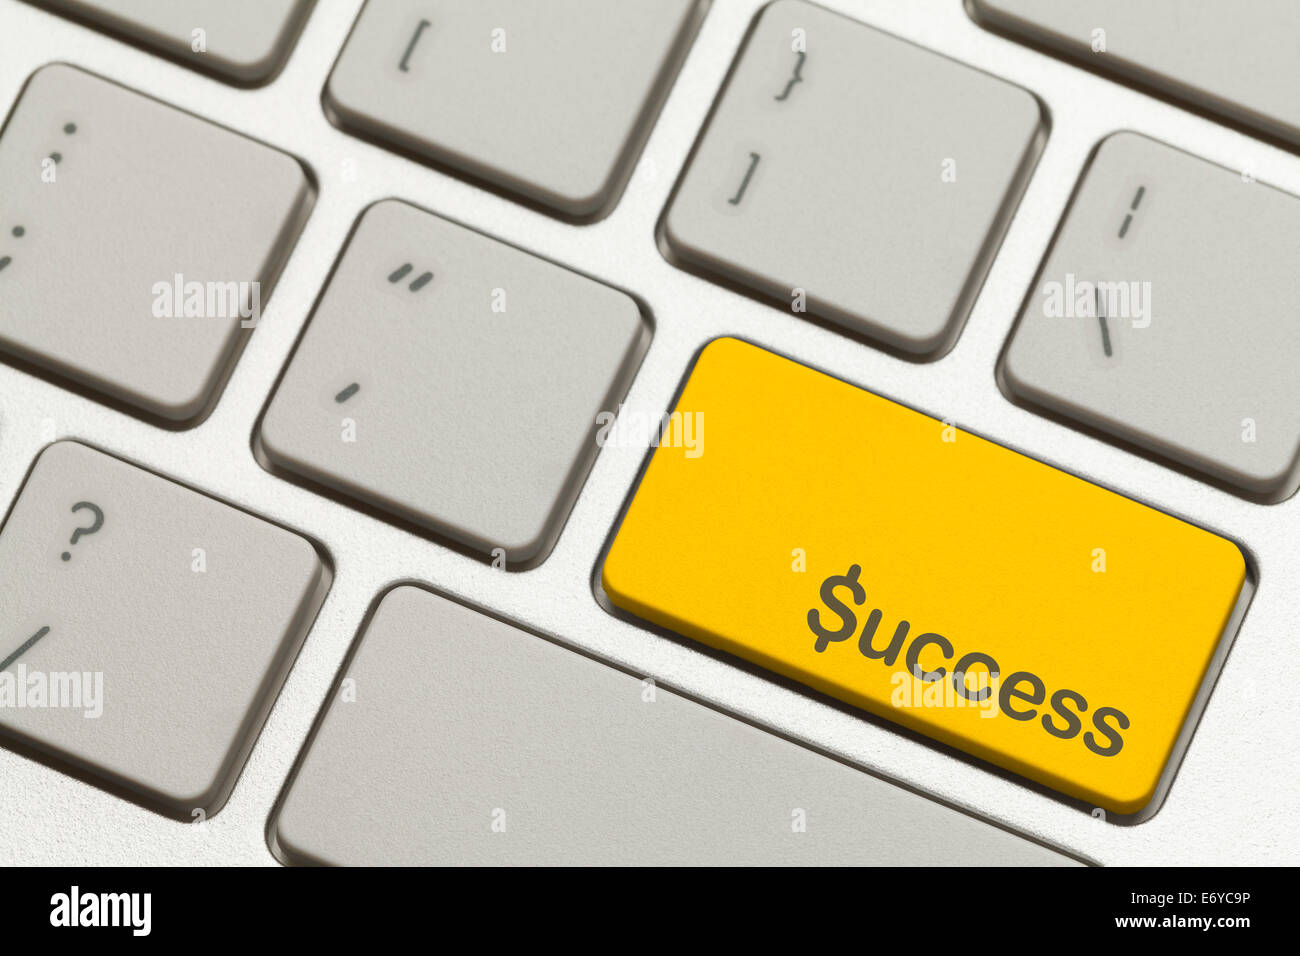 Close Up of Gold Success Key Button on a Keyboard. - Stock Image